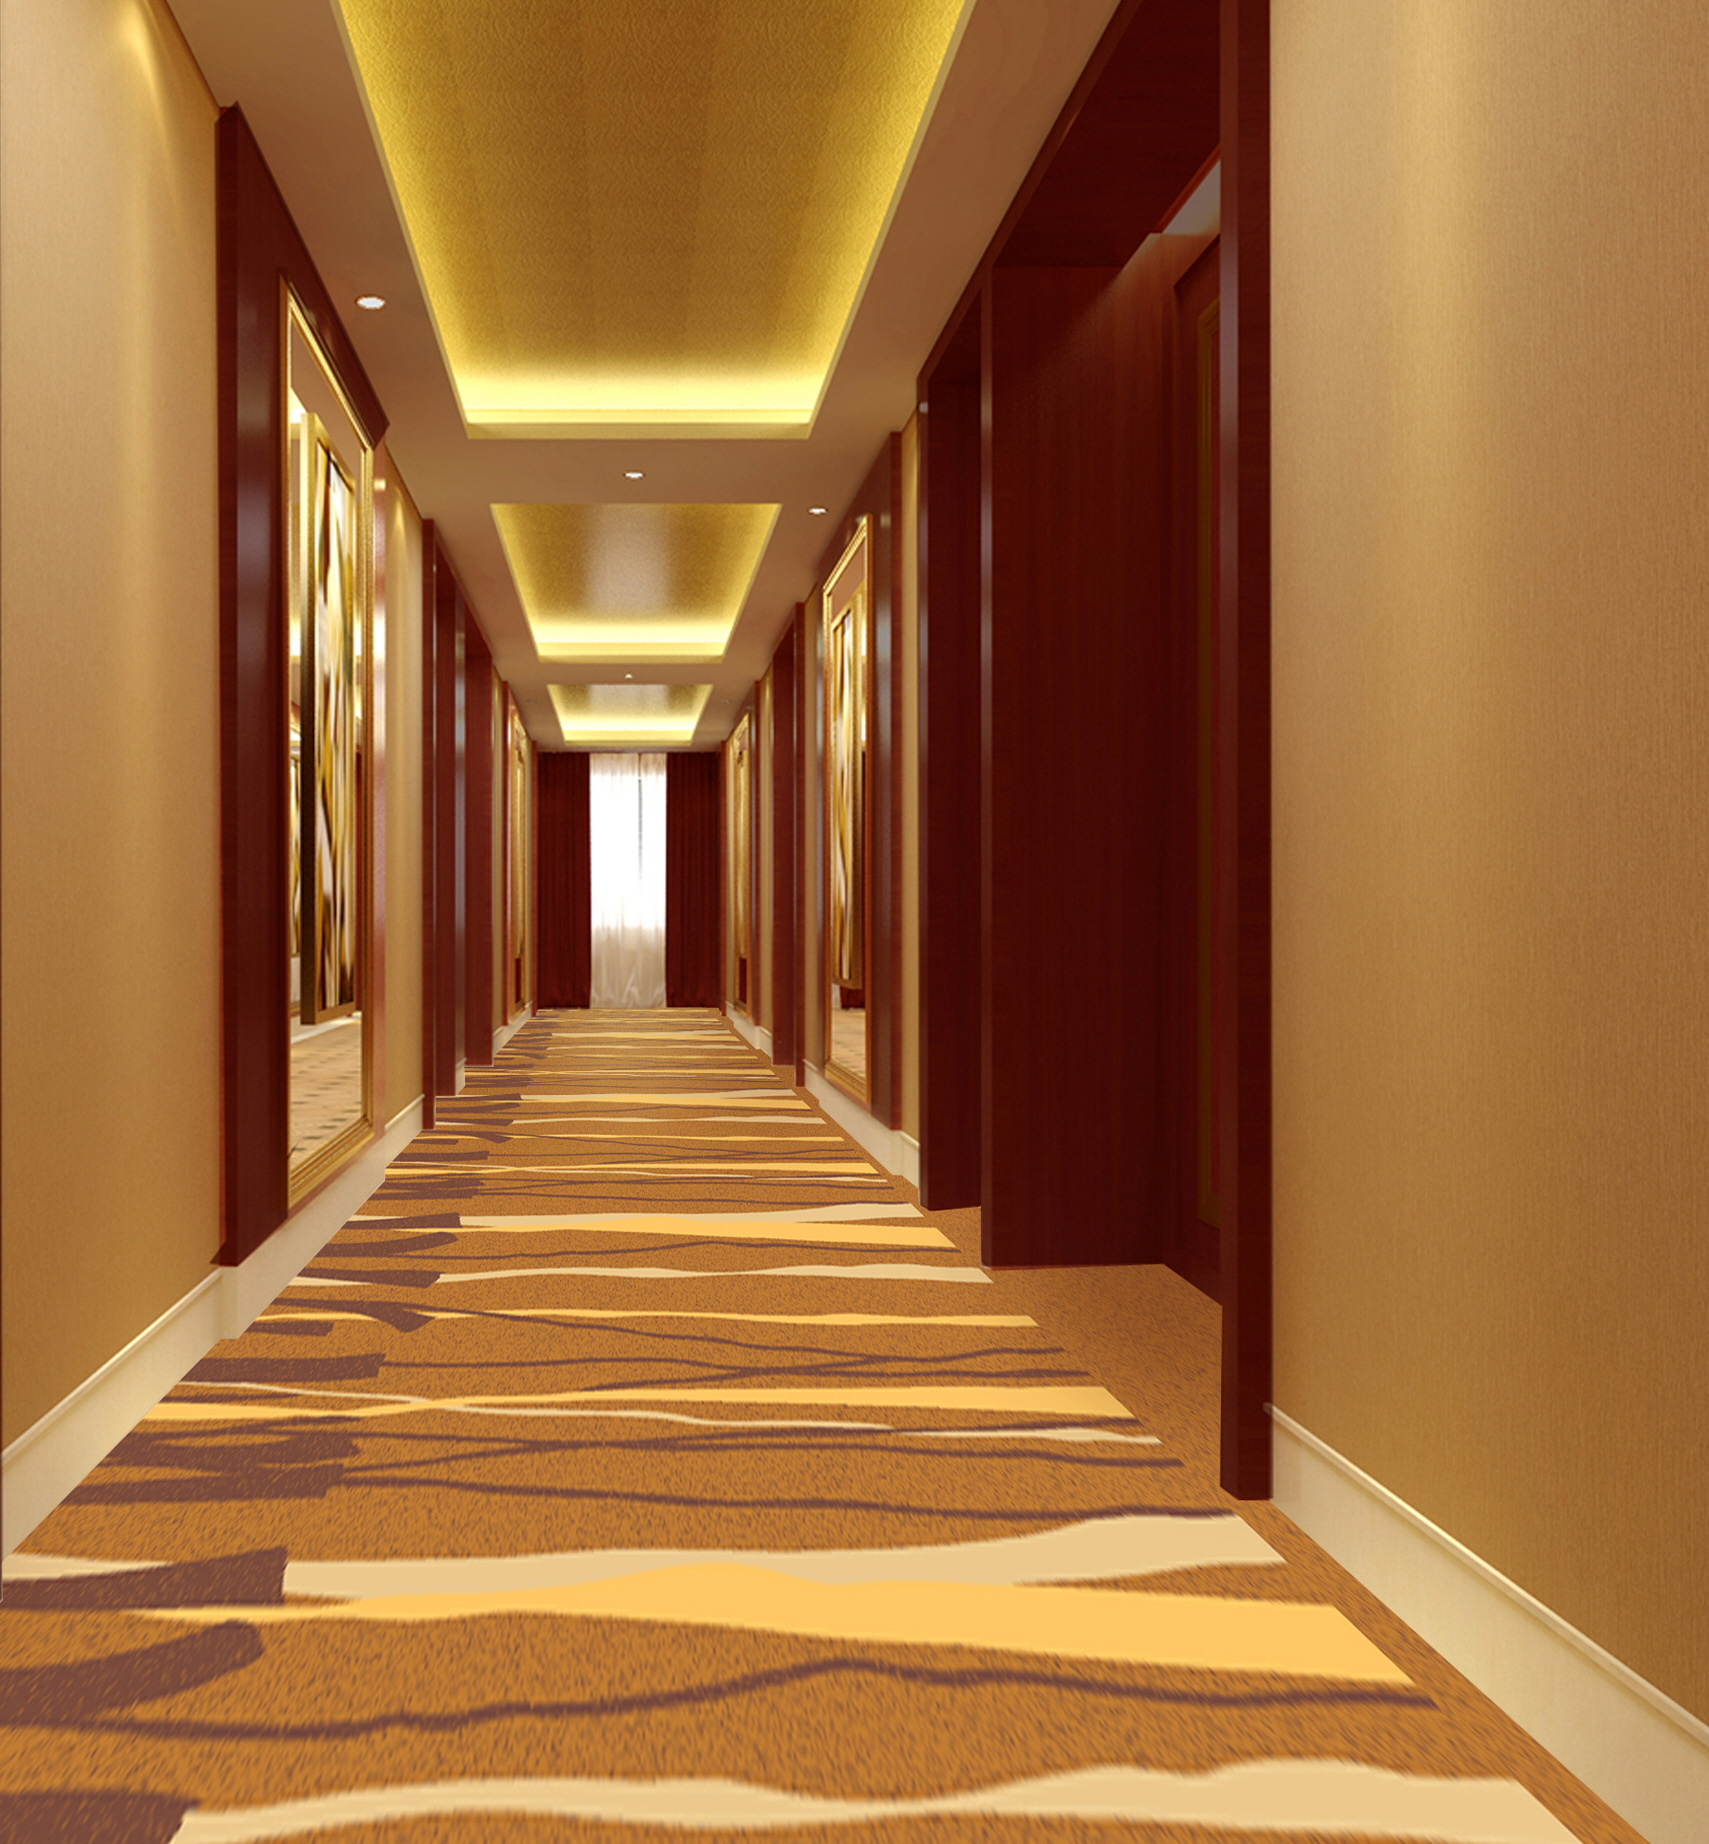 Decoration Design: Corridor Designing